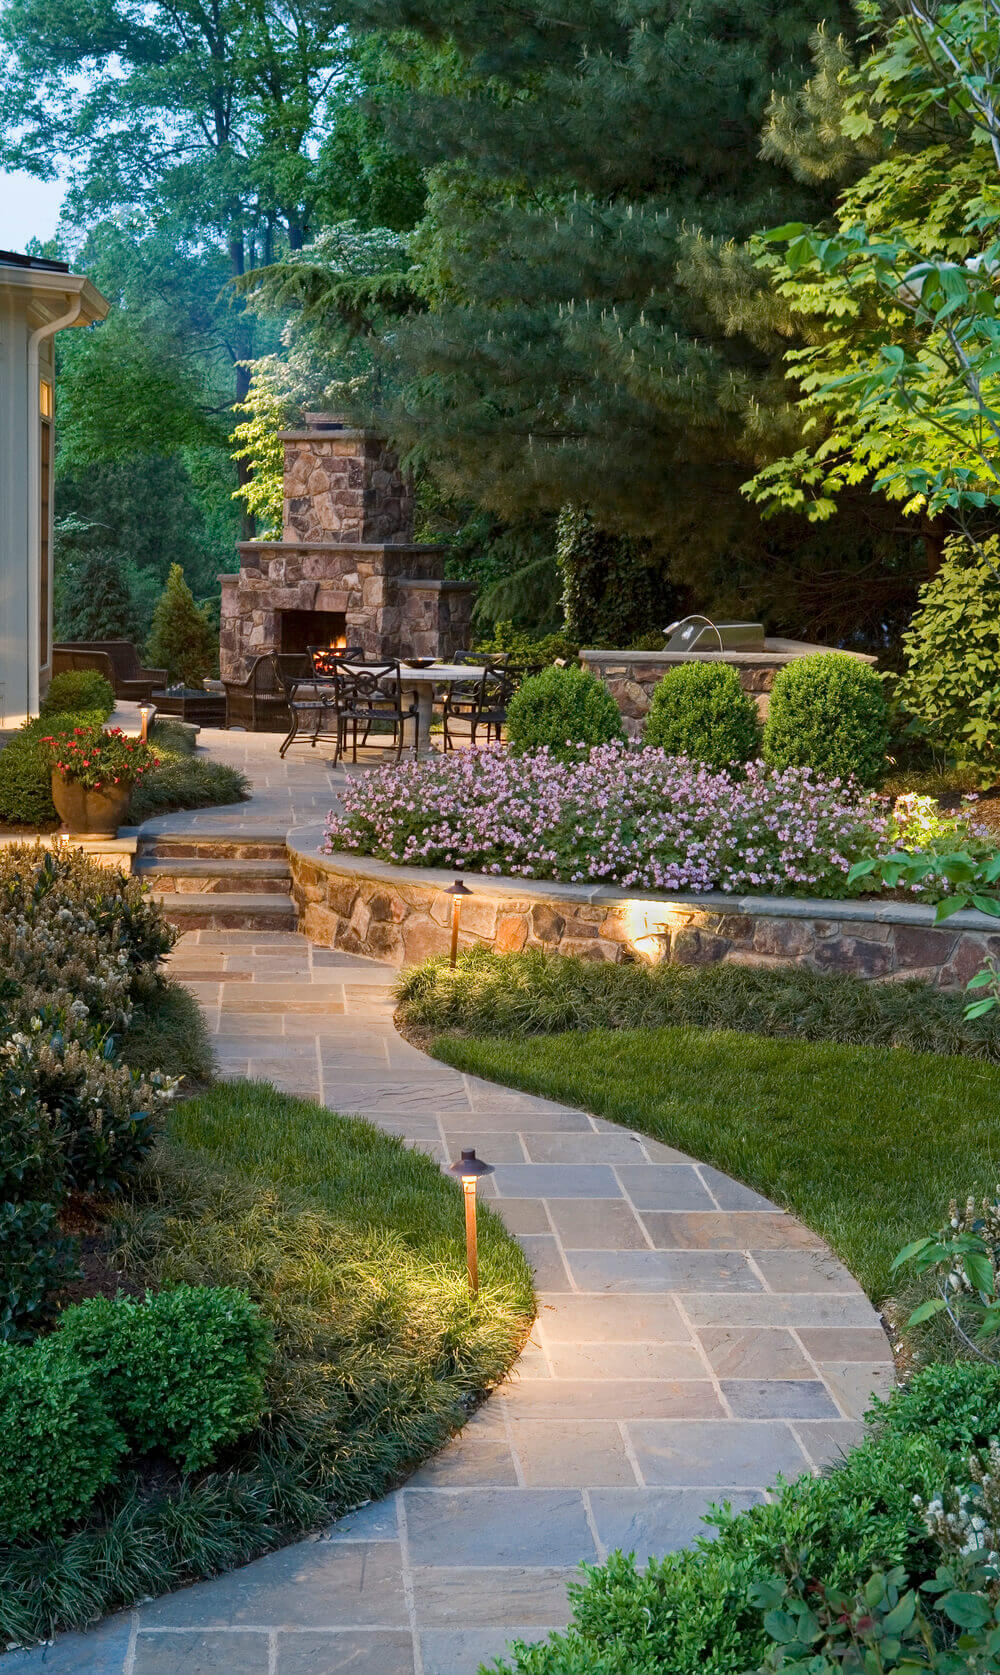 Pair Regular Angles With A Winding Walkway